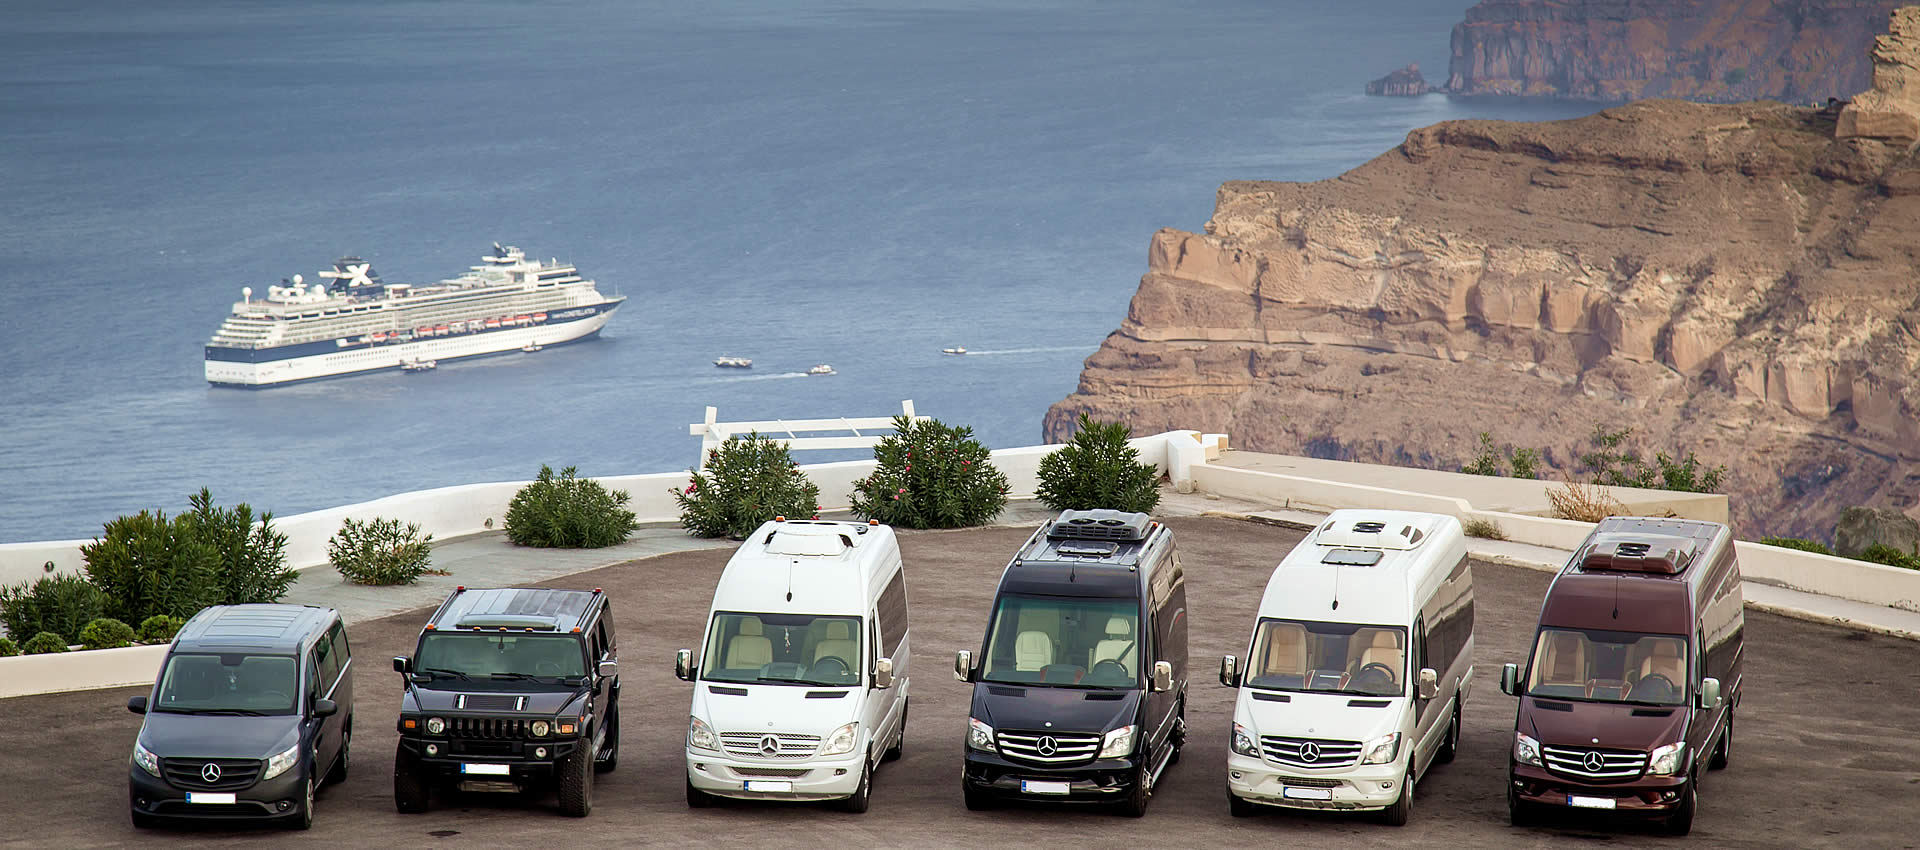 Luxurious VIP transfers in Santorini, services for weddings, tours, conferences, limos for weddings in Santorini